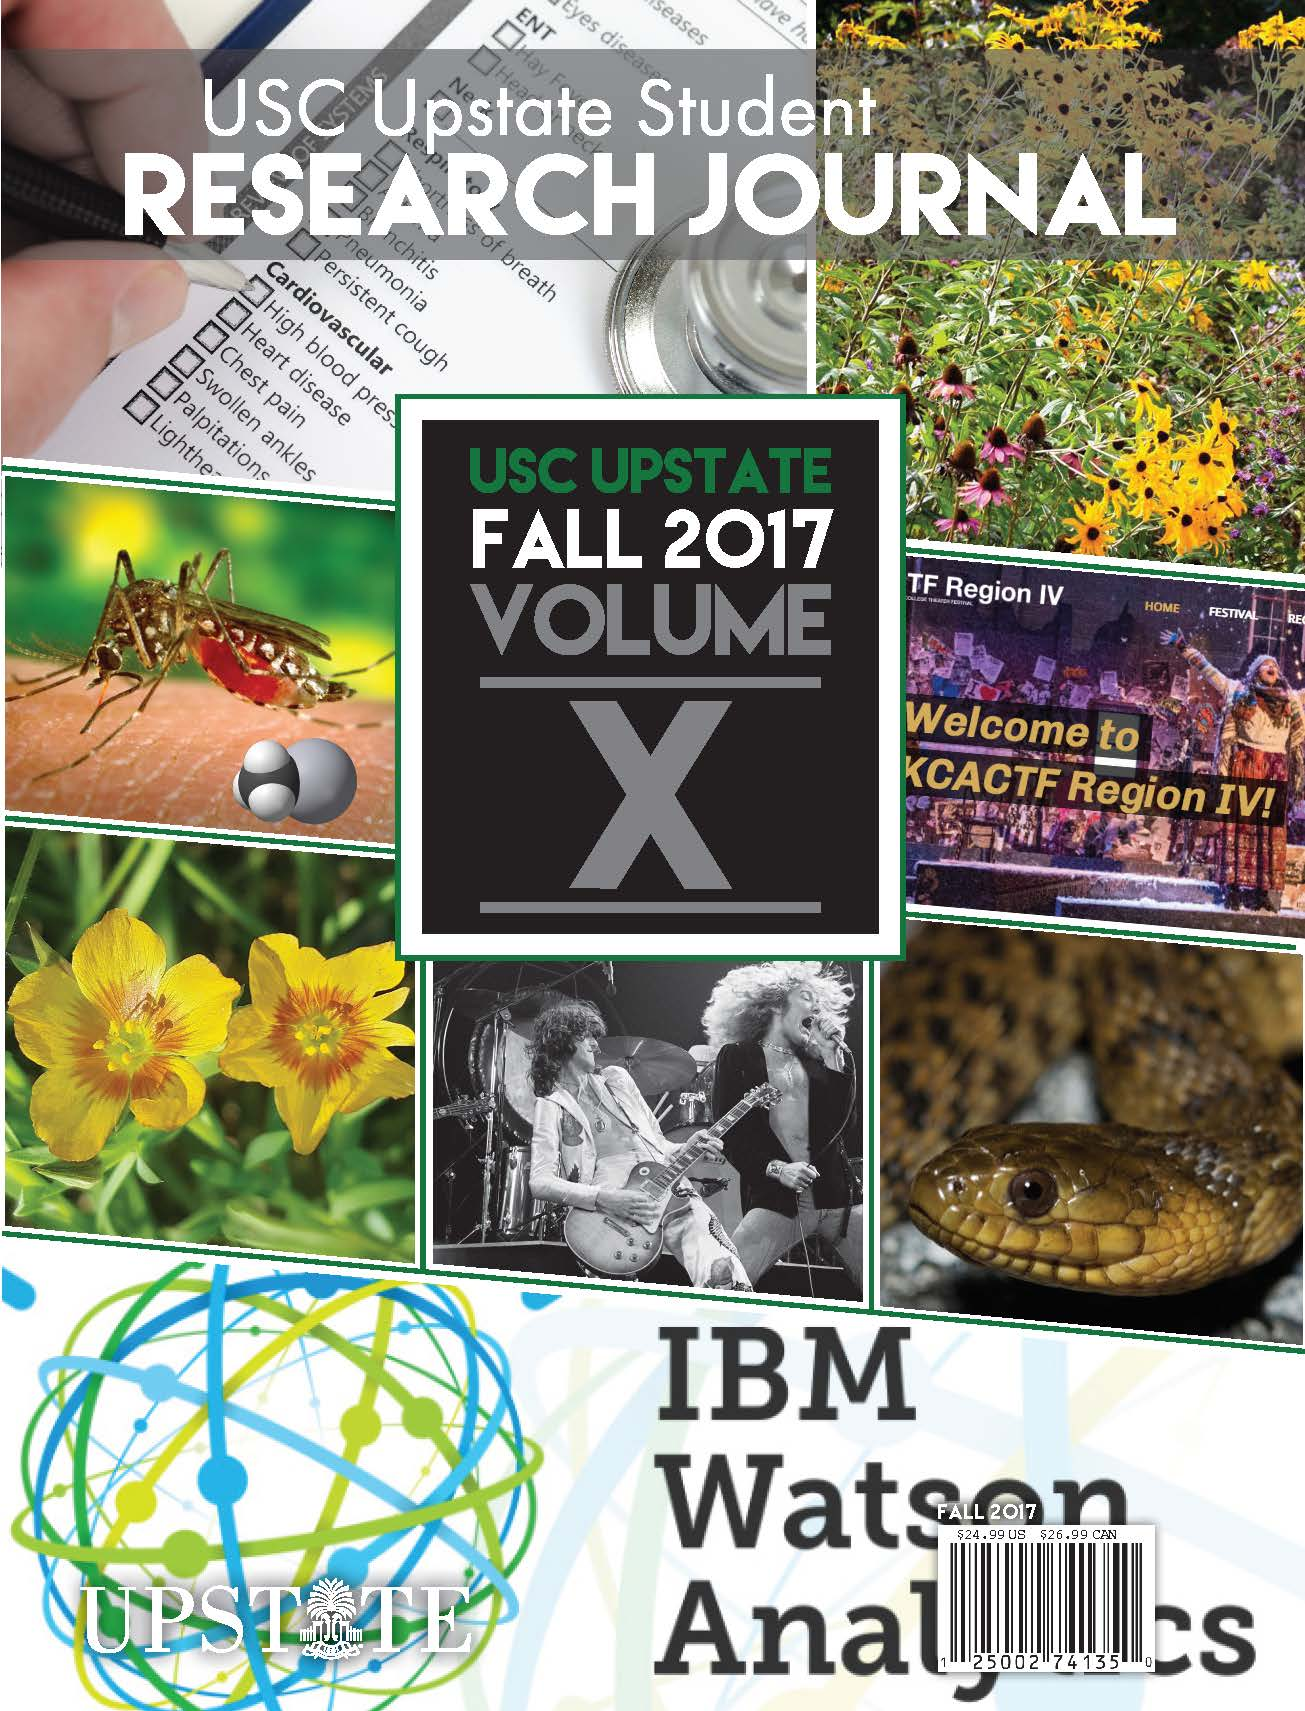 Fall 2017 USC Upstate Student Research Journal